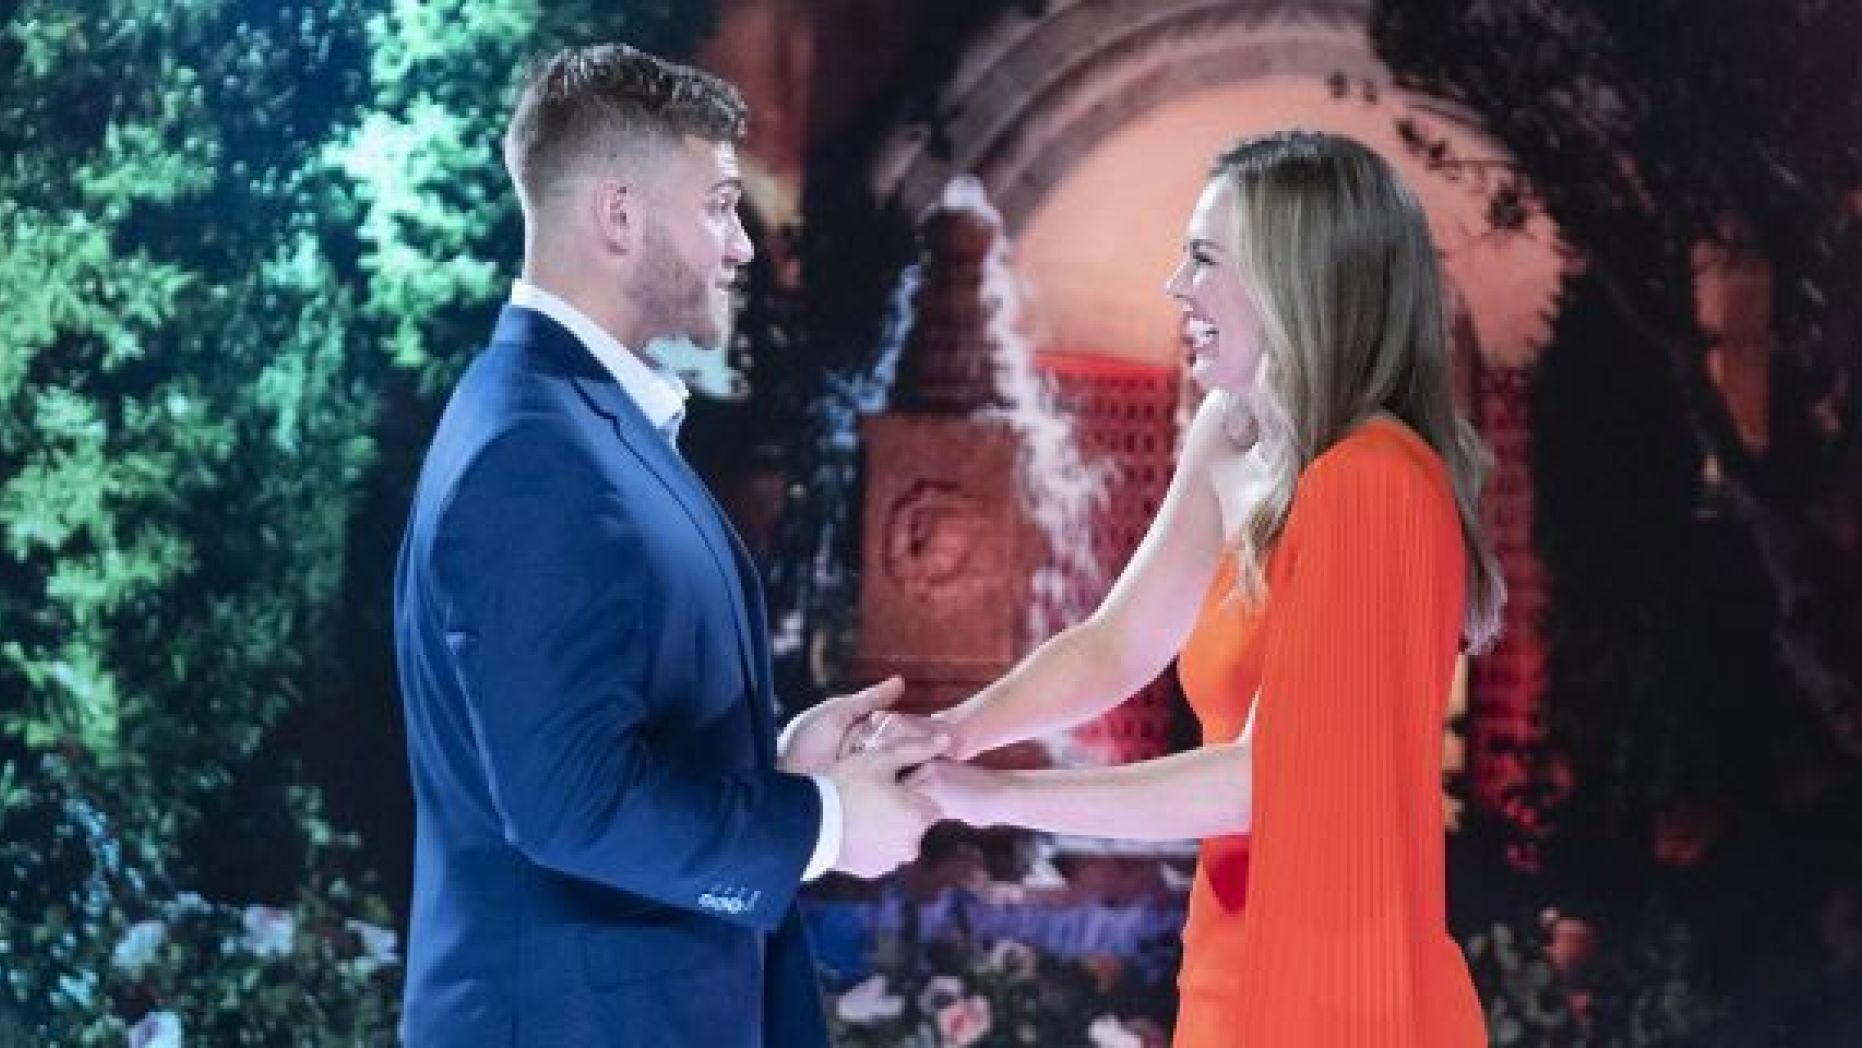 """The Bachelorette"" star Hannah Brown and contestant Luke Parker have stirred up controversy talking about their Christian faith and views on premarital sex."